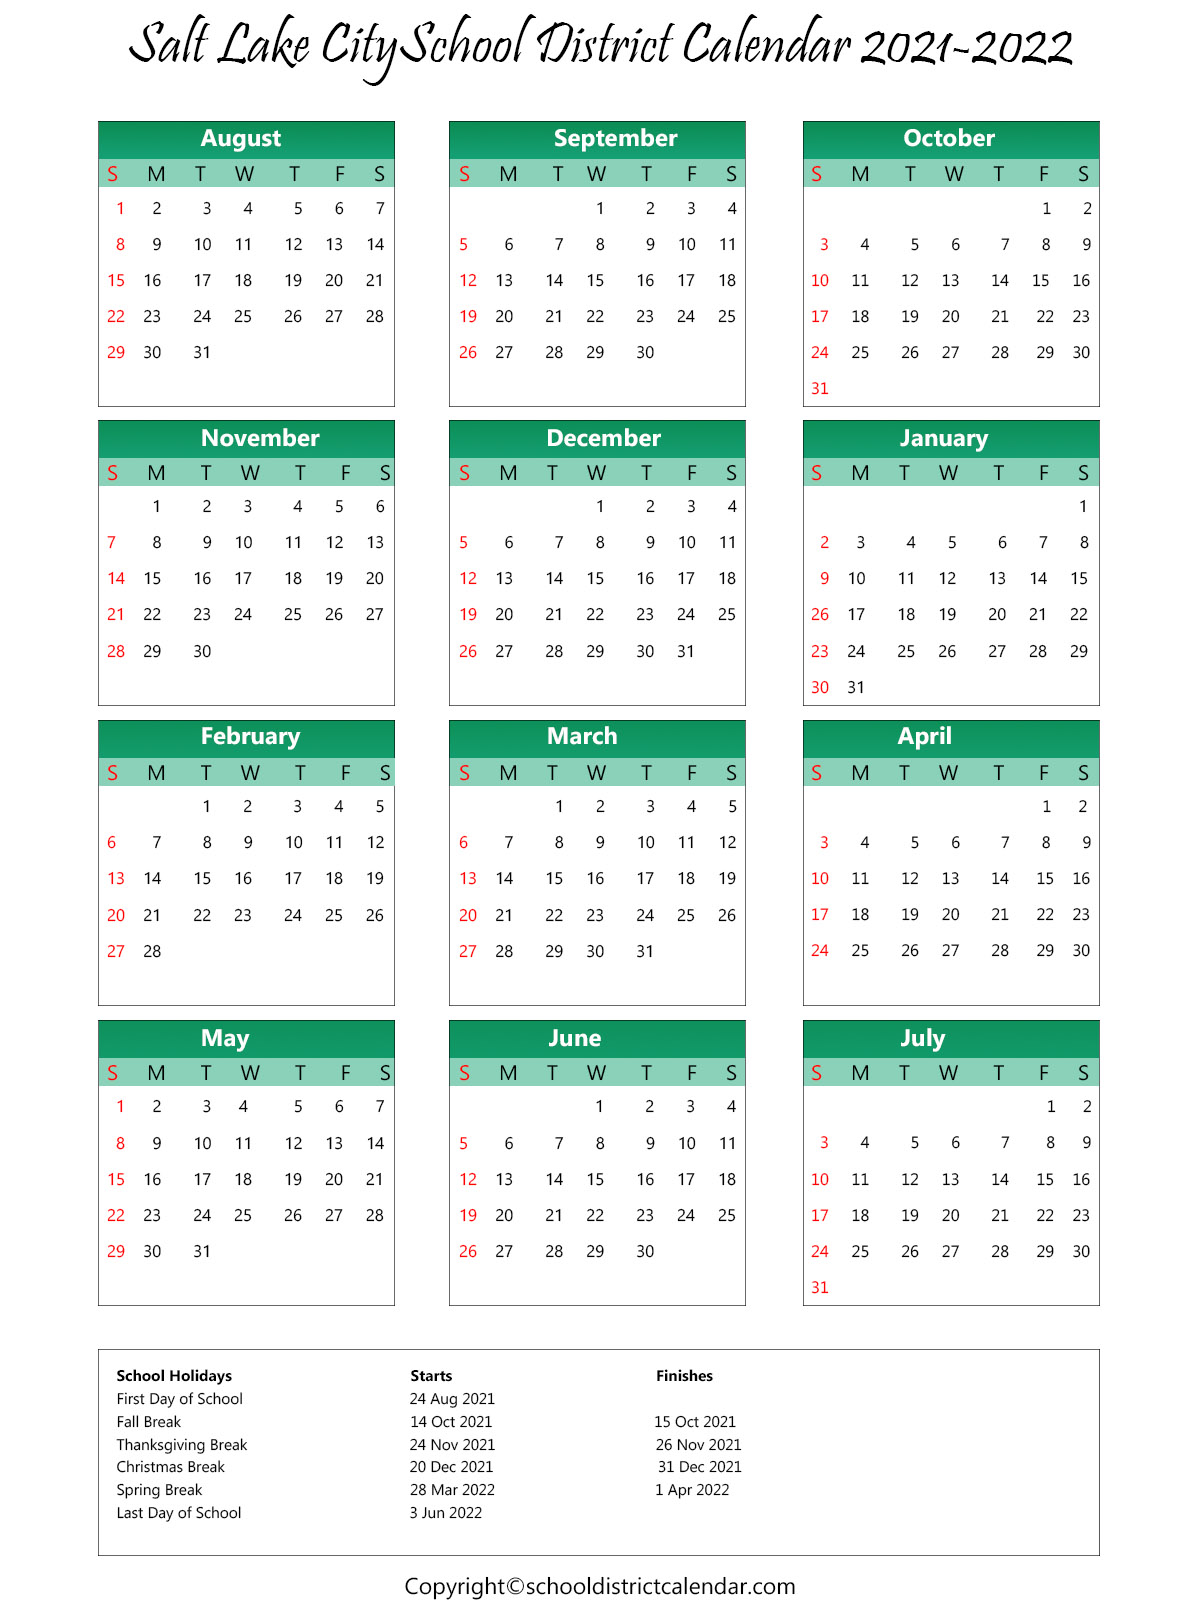 Salt Lake City School District, Utah Calendar Holidays 2021